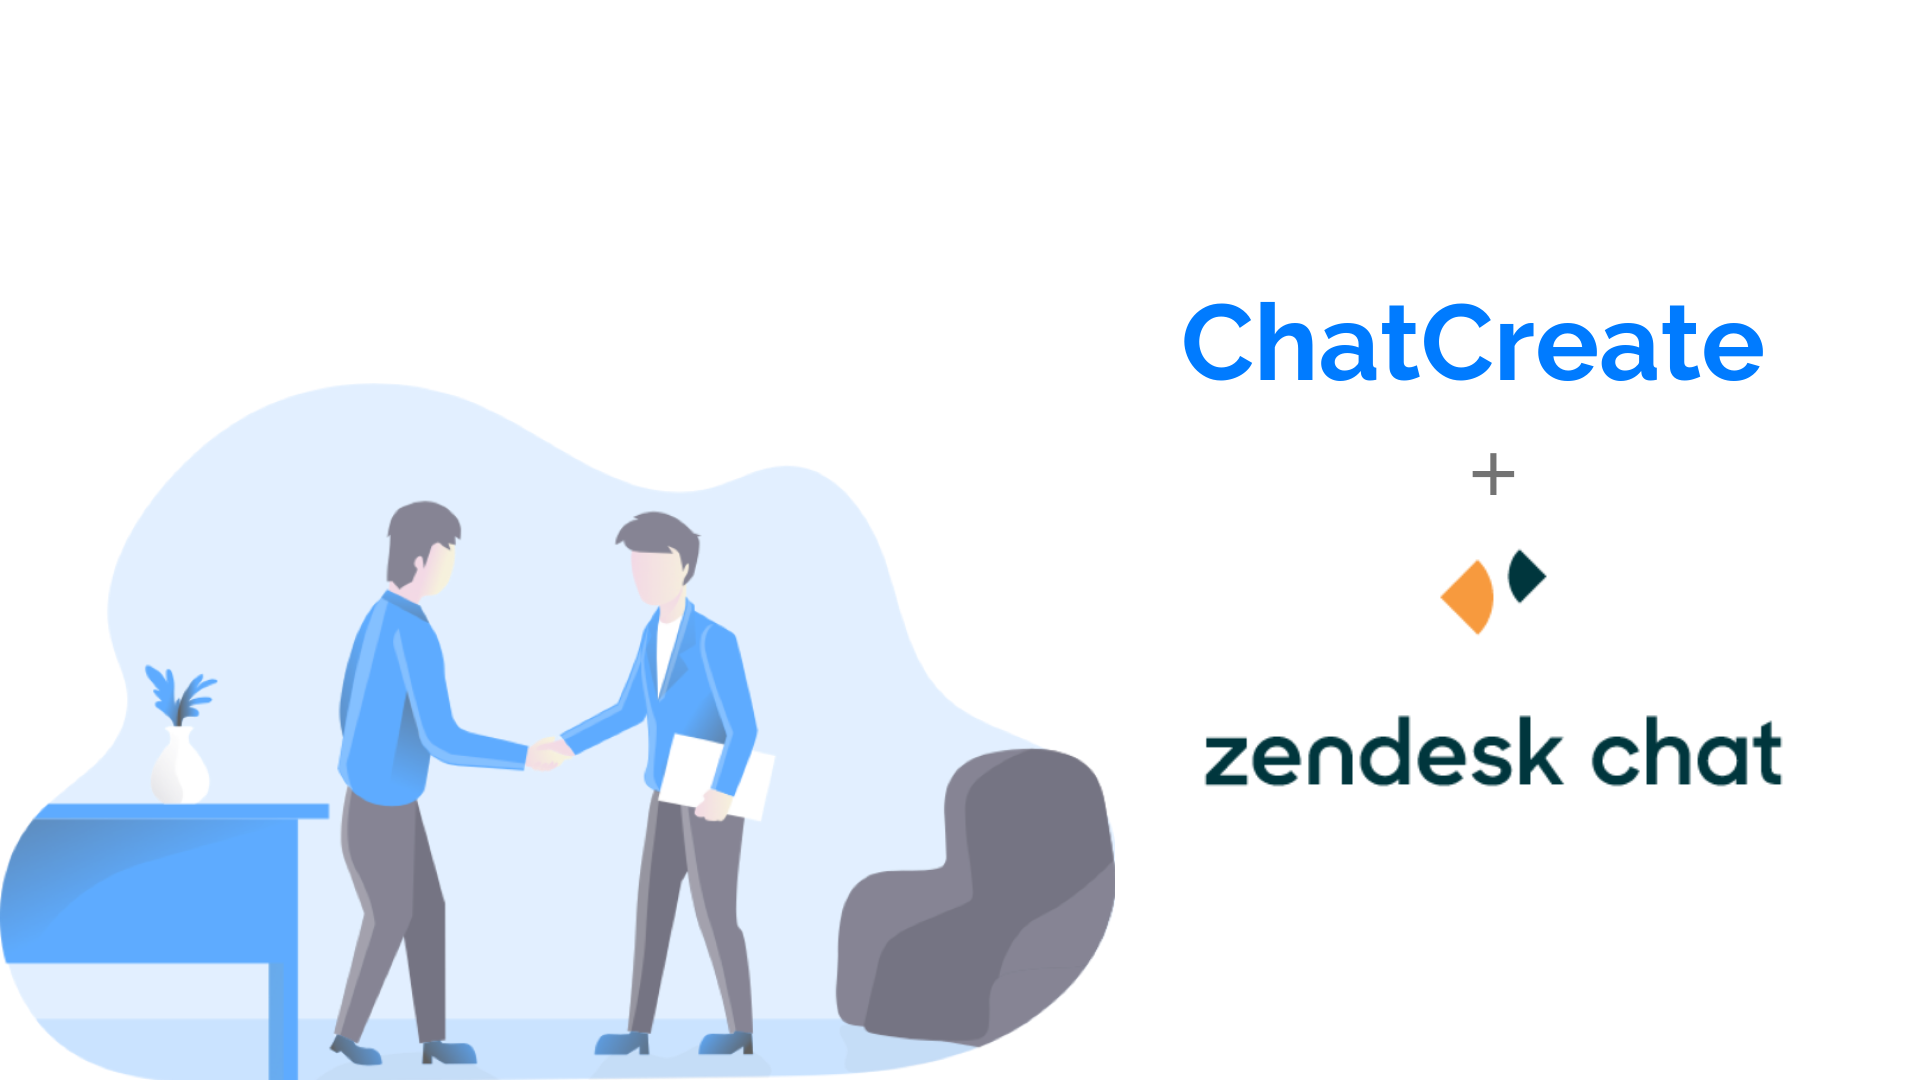 How to connect your Zendesk account to ChatCreate